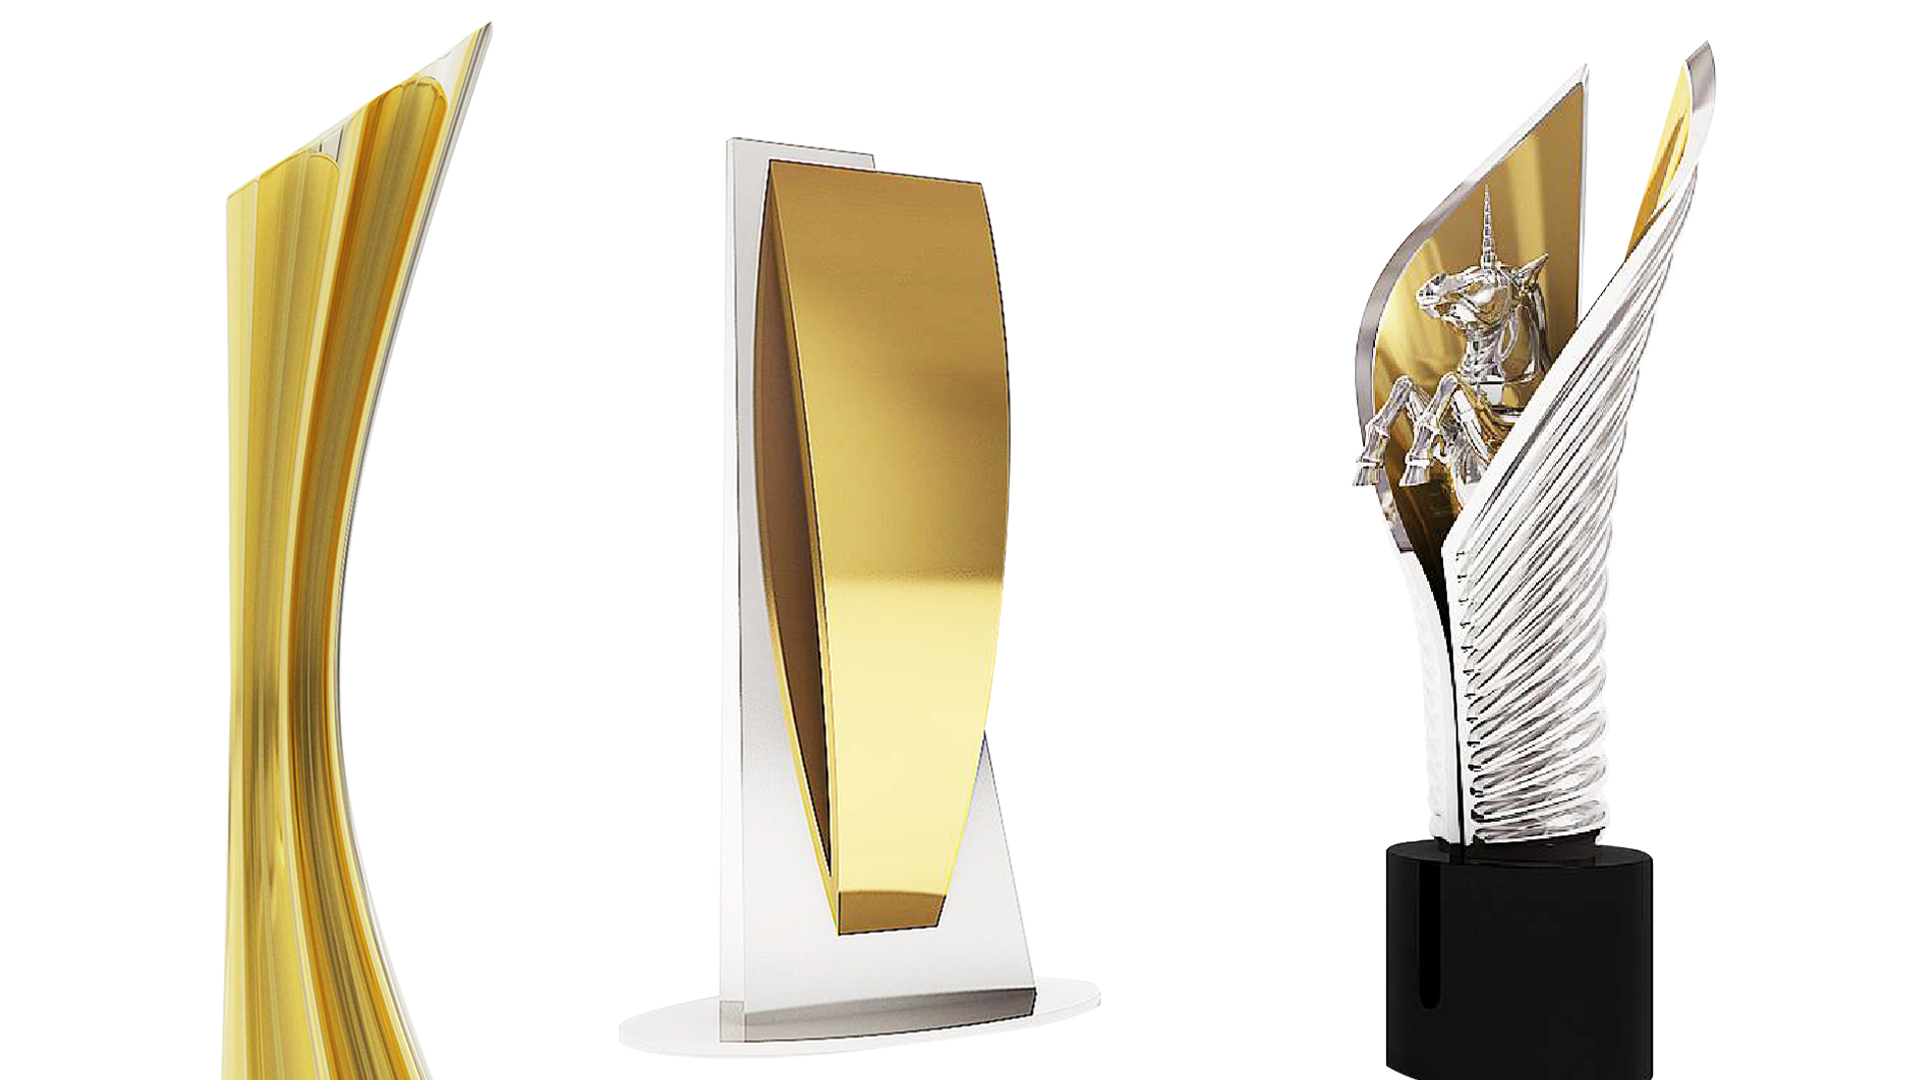 Custom trophies in gold and silver including one unicorn award statue